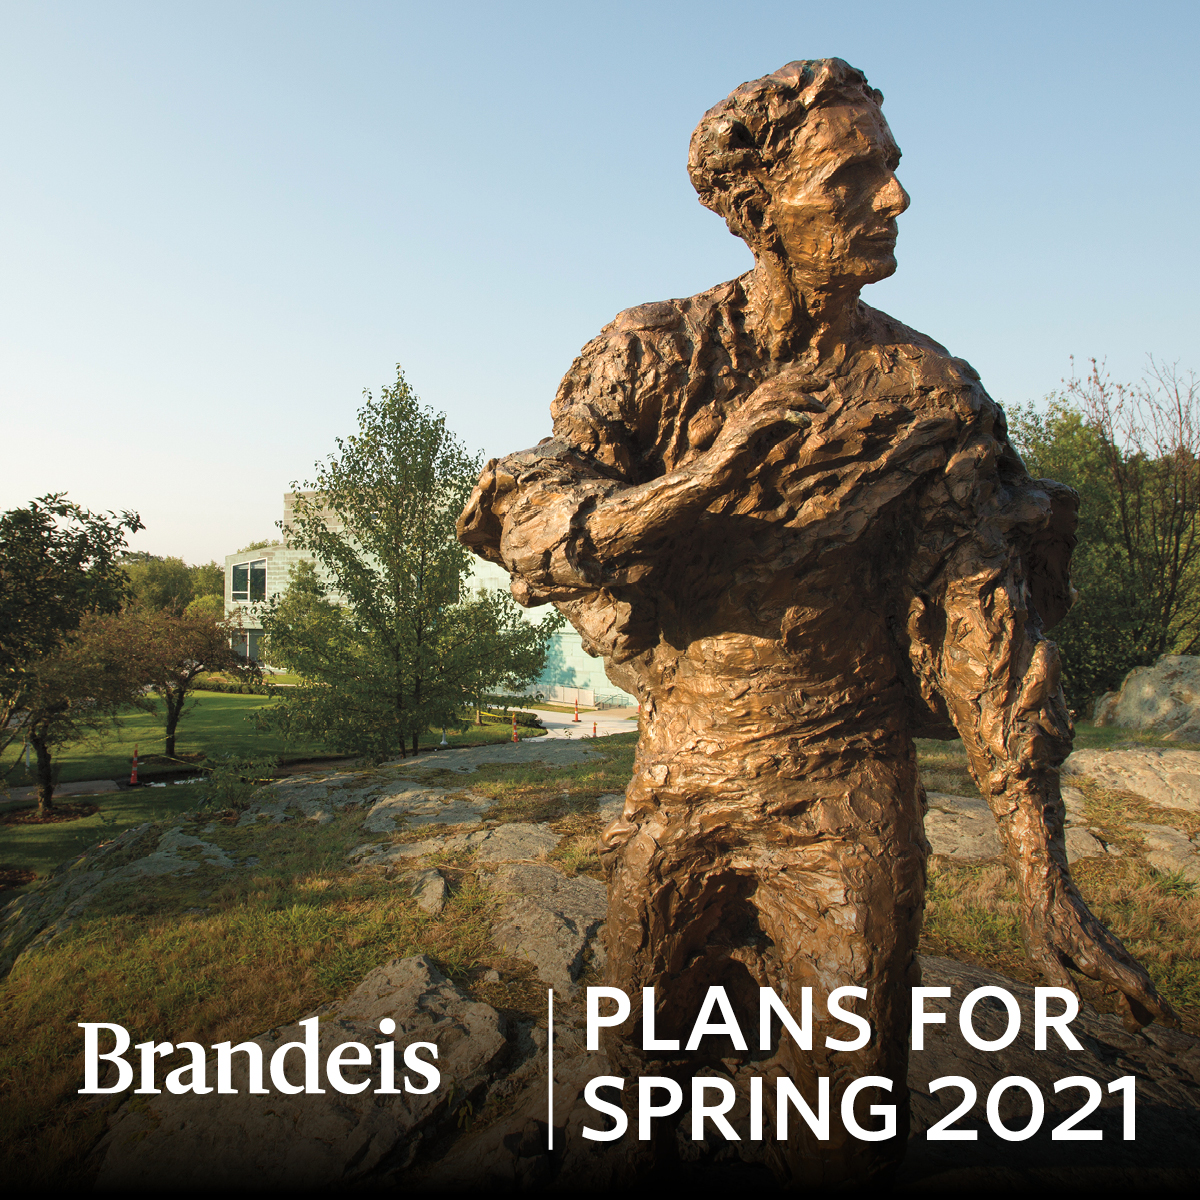 Brandeis Academic Calendar Spring 2021 Plans for the 2020 21 School Year at Heller | The Heller School at